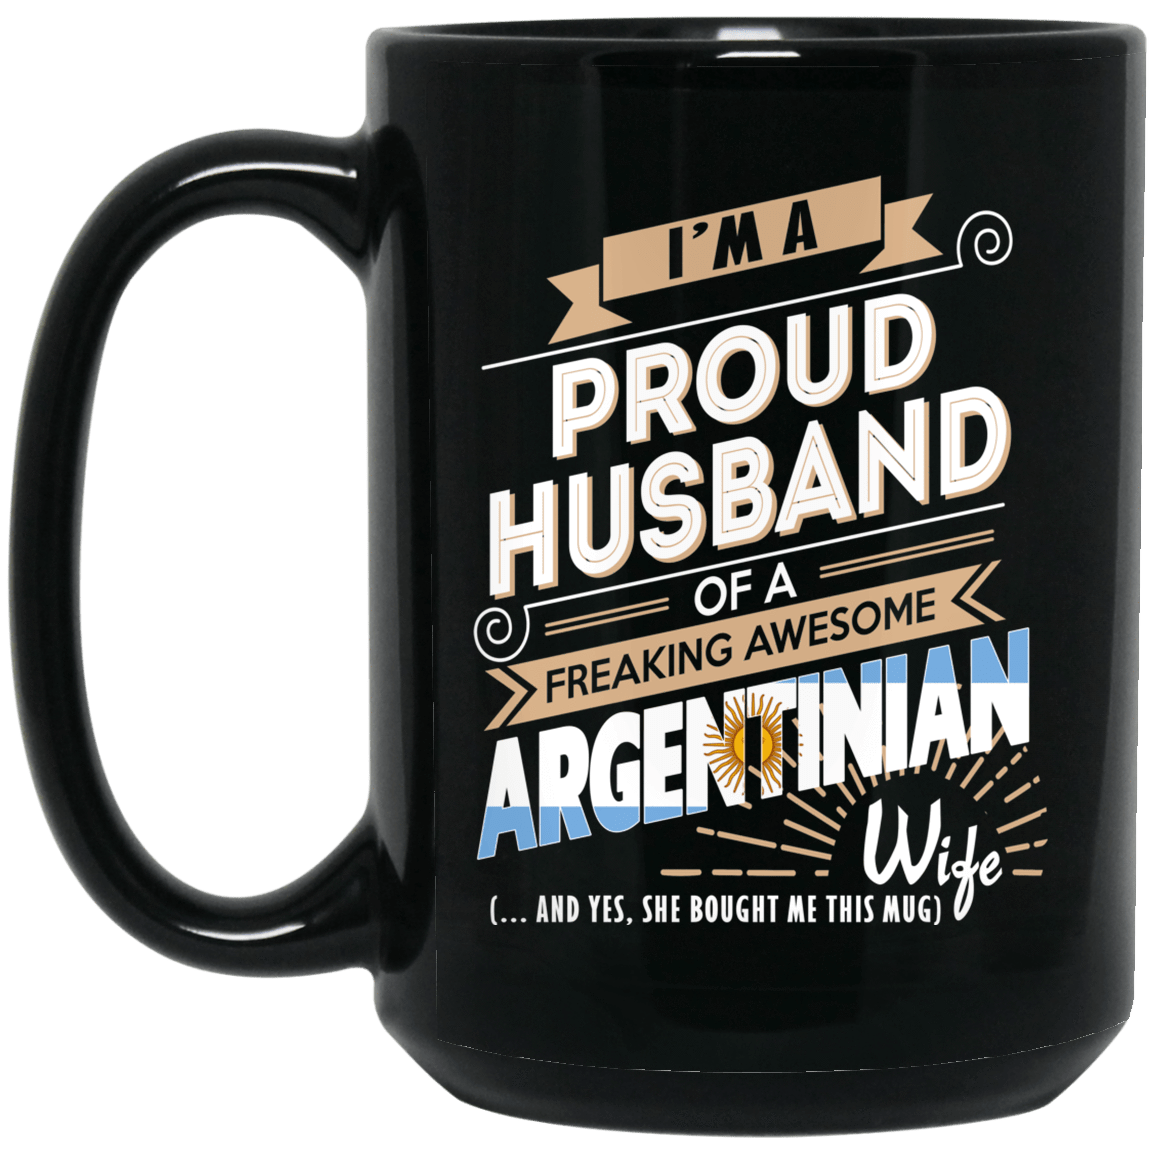 Proud Husband Of A Freaking Awesome Argentinian Wife Mug 1066-10182-72136612-49311 - Tee Ript